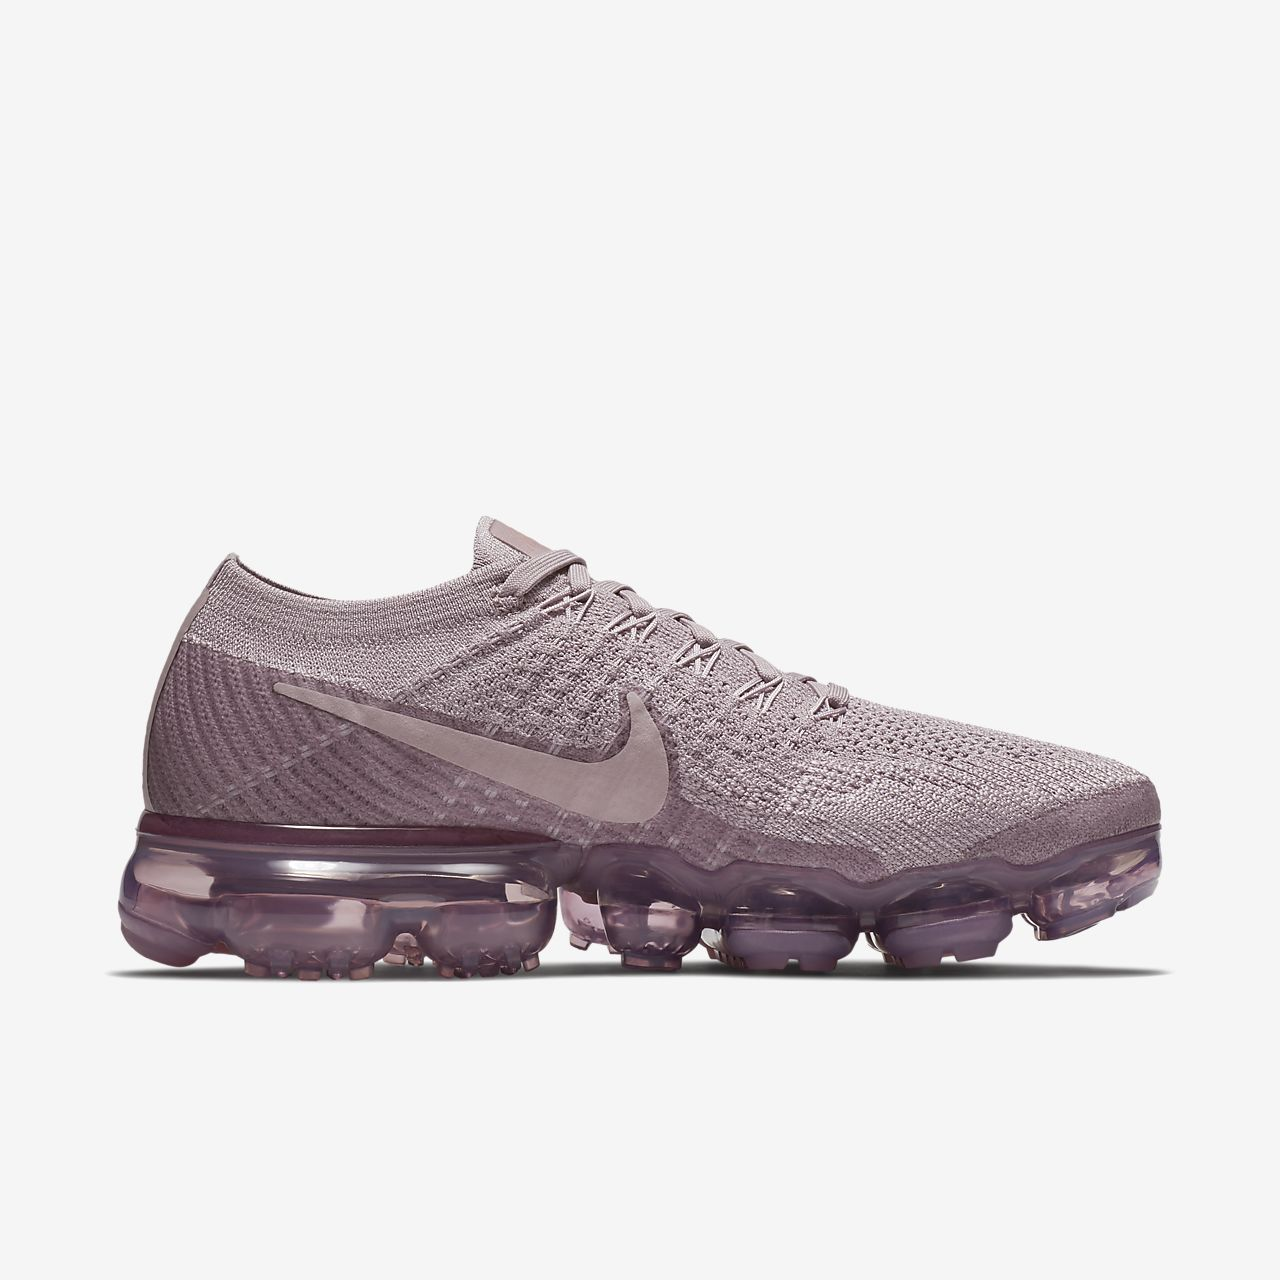 b33e6cedf459 Nike Air VaporMax Flyknit Women s Shoe. Nike.com IN